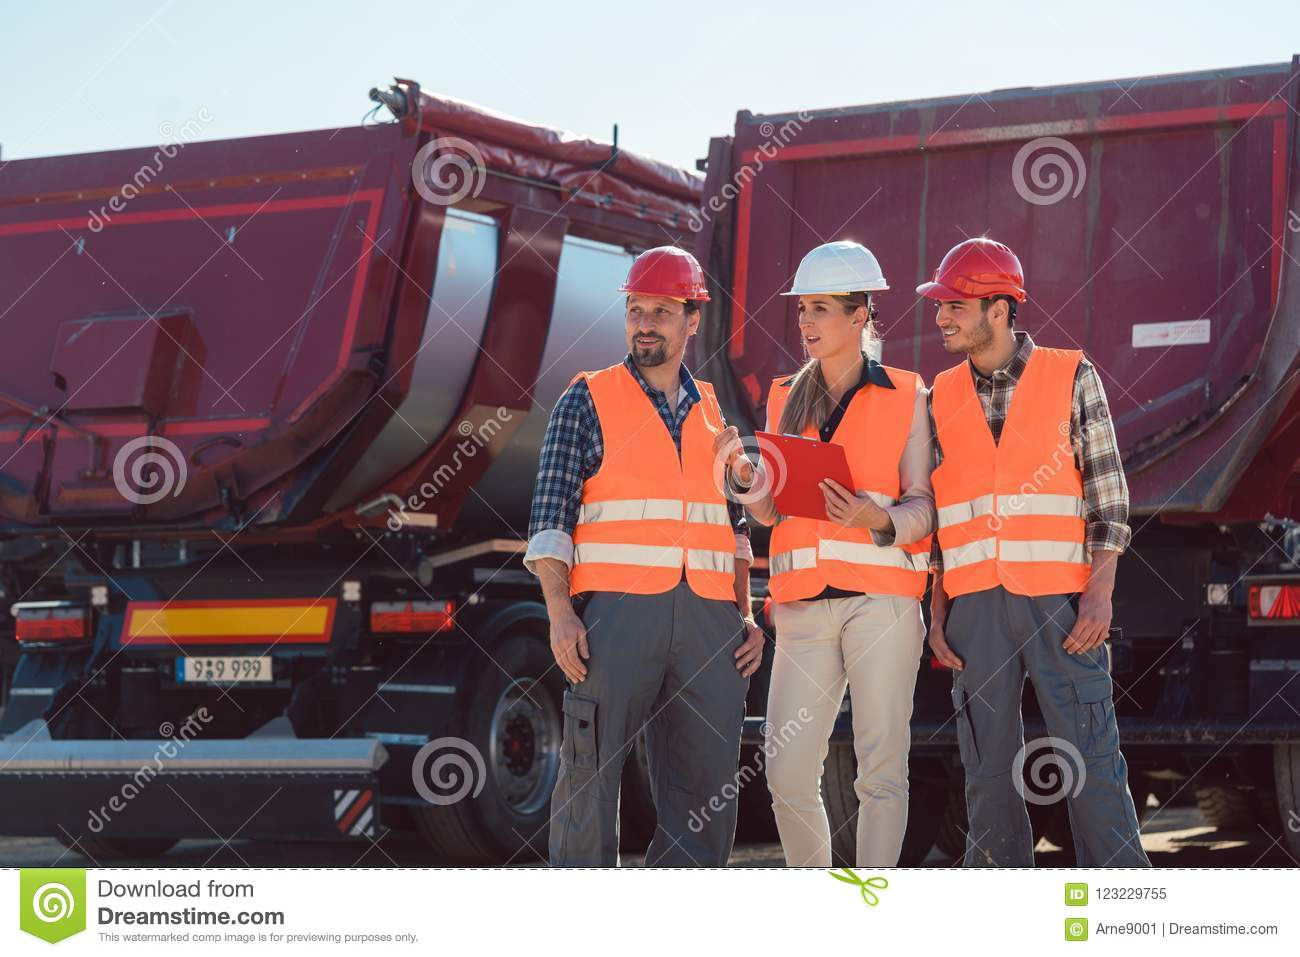 Truck drivers and dispatcher in front of lorries in freight forwarding company